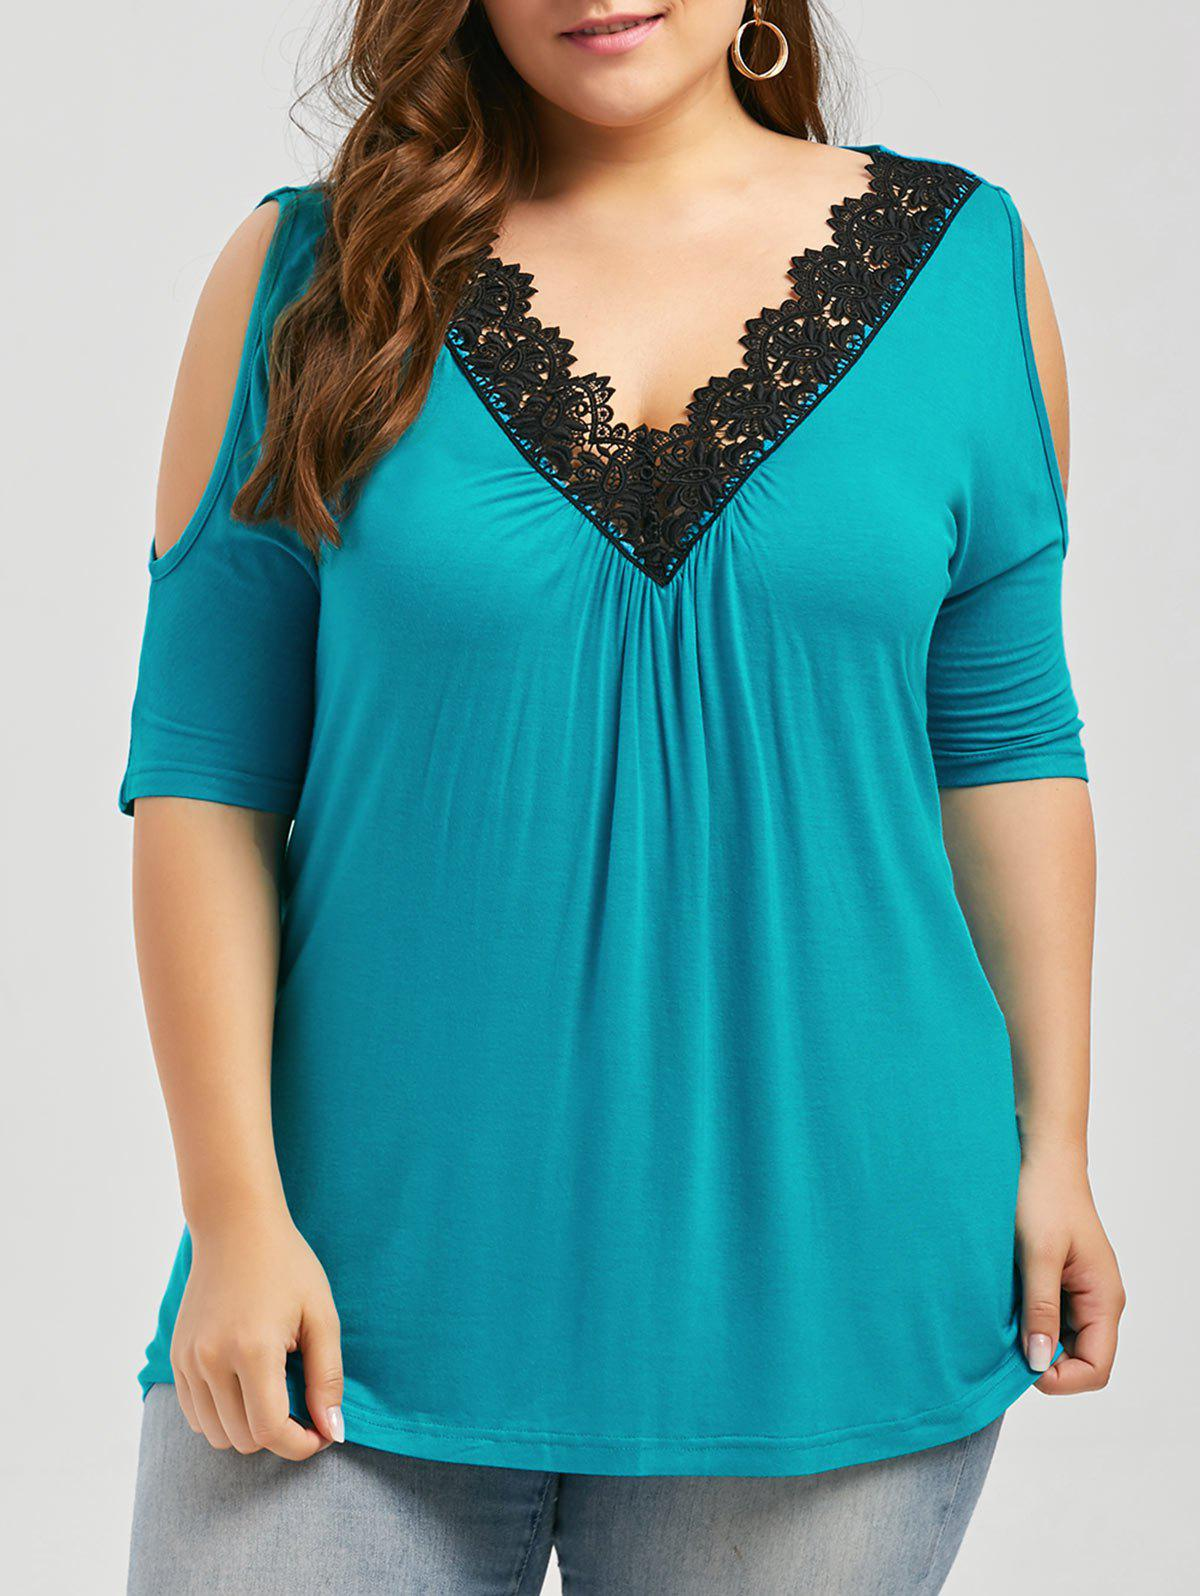 Plus Size Lace Trim Cold Shoulder V Neck Flowy TopWOMEN<br><br>Size: 4XL; Color: OASIS; Material: Cotton,Cotton Blends,Polyester; Shirt Length: Regular; Sleeve Length: Short; Collar: V-Neck; Style: Fashion; Season: Spring,Summer; Embellishment: Hollow Out; Pattern Type: Solid; Weight: 0.3400kg; Package Contents: 1 x Top;